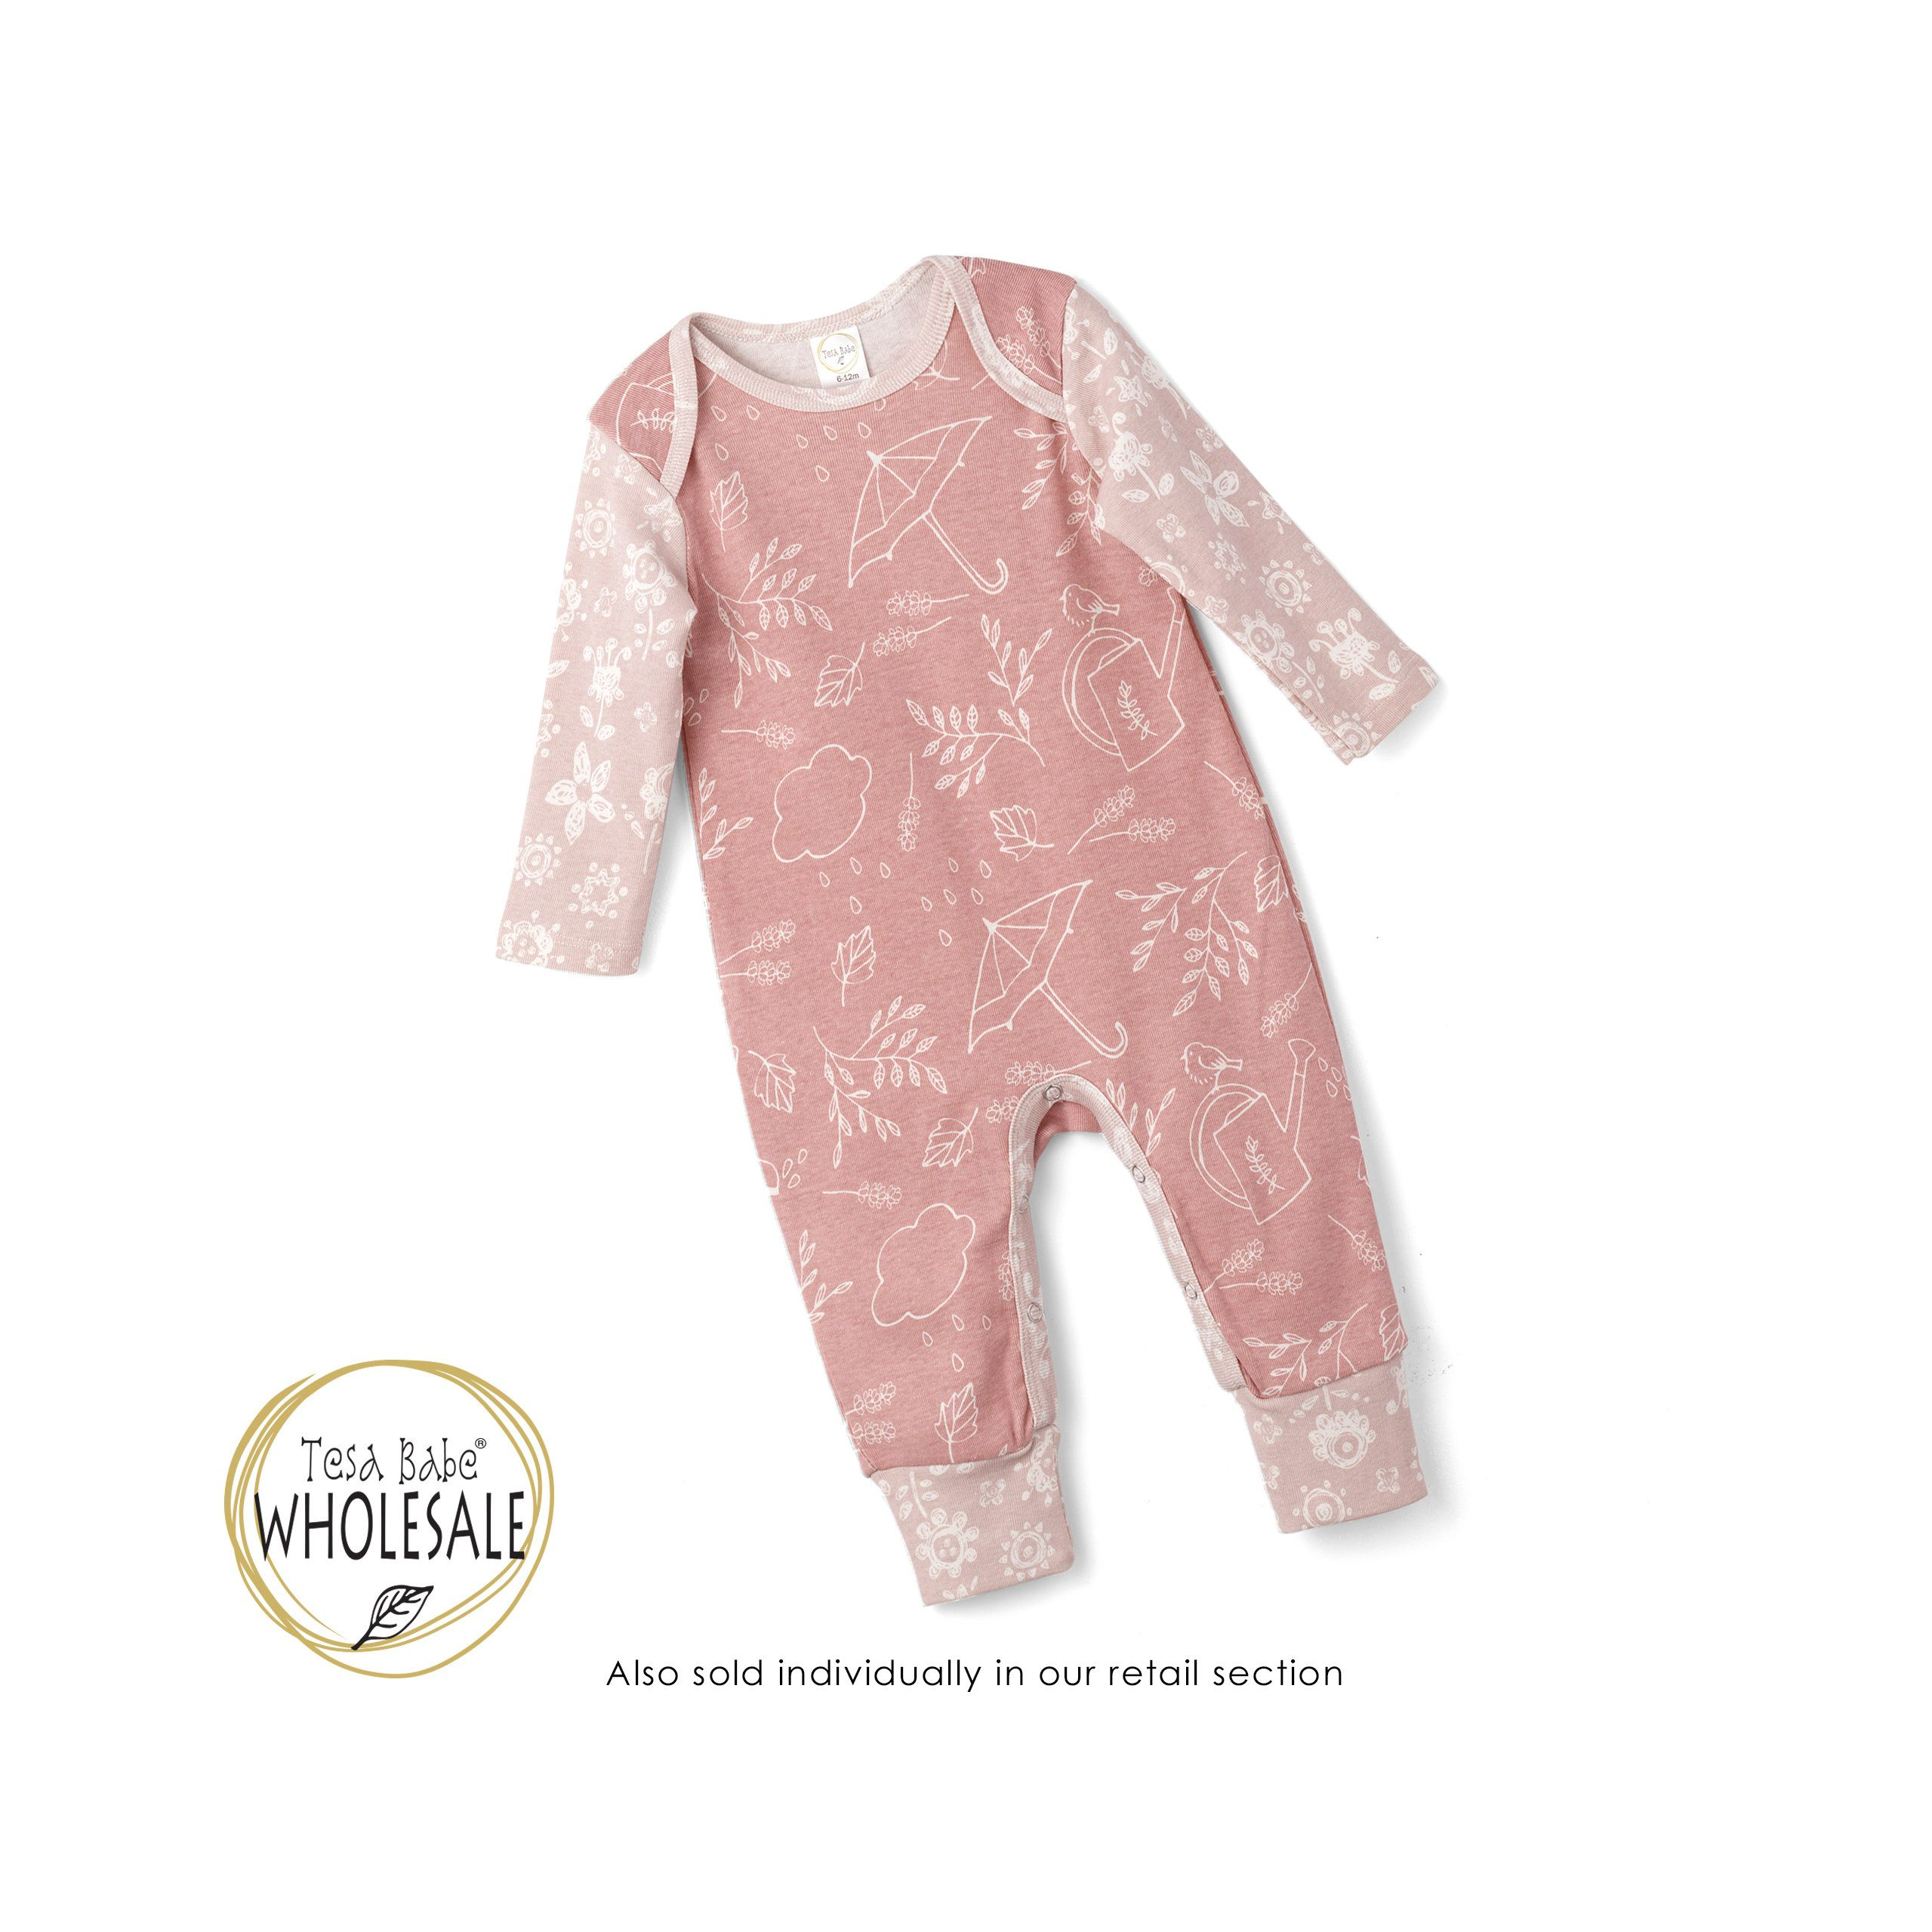 90e38c228f7 WHOLESALE Baby Pink Onesie Outfit